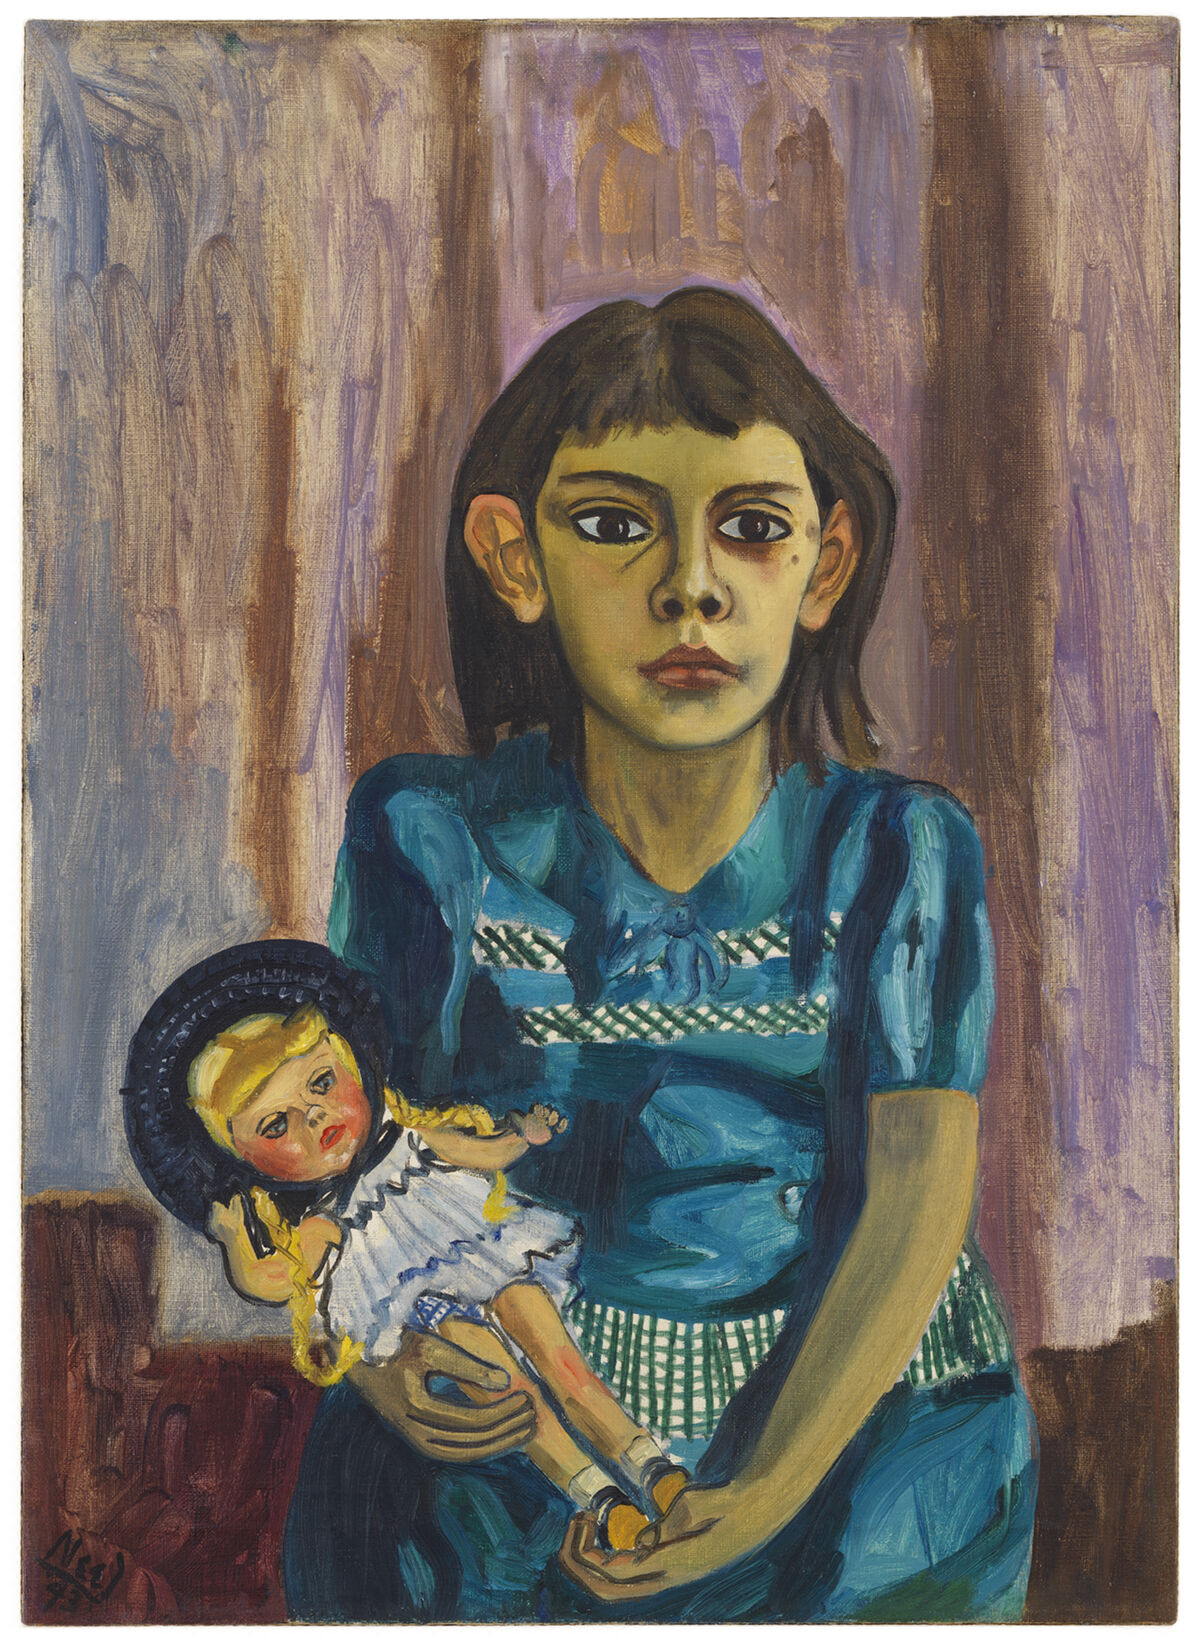 Alice Neel, Julie and the Doll, 1943. © The Estate of Alice Neel. Courtesy David Zwirner, New York/London and Victoria Miro, London.